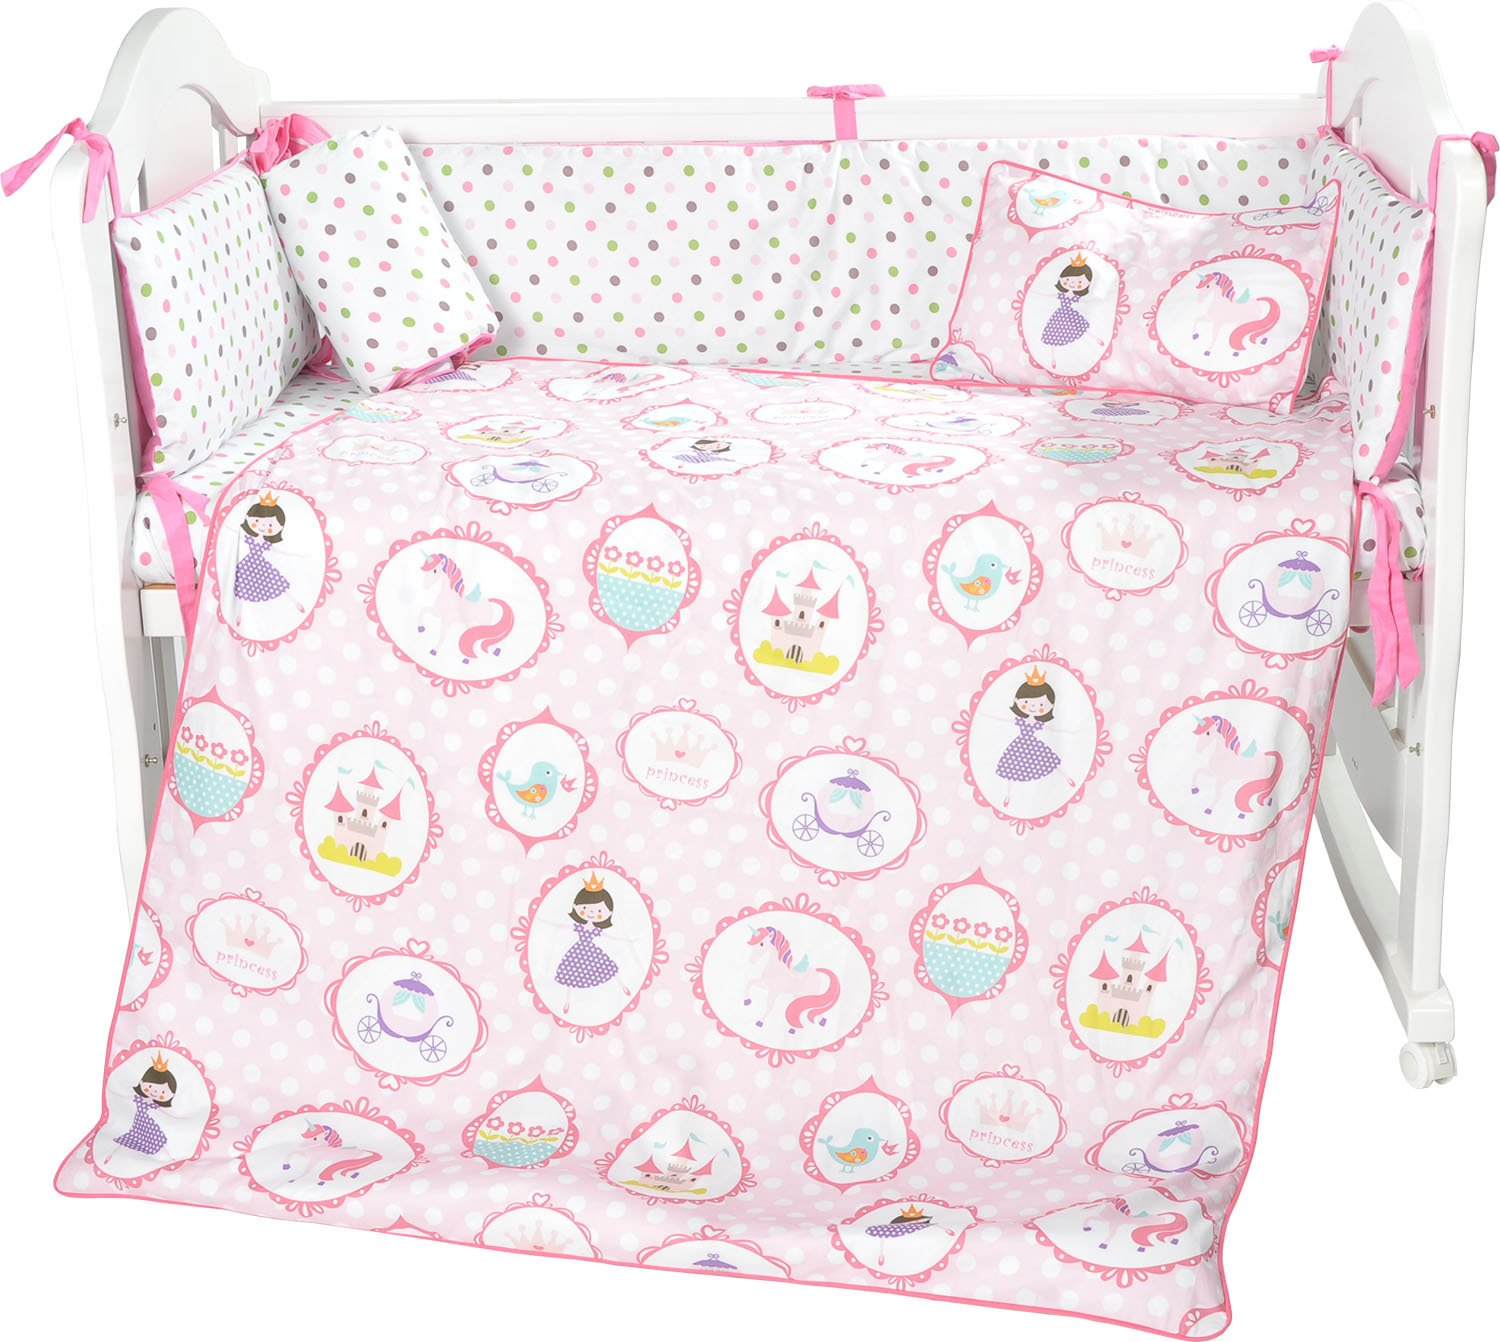 Baby Cot Sets Australia Cheap Cot Bedding Sets Australia Find Cot Bedding Sets Australia